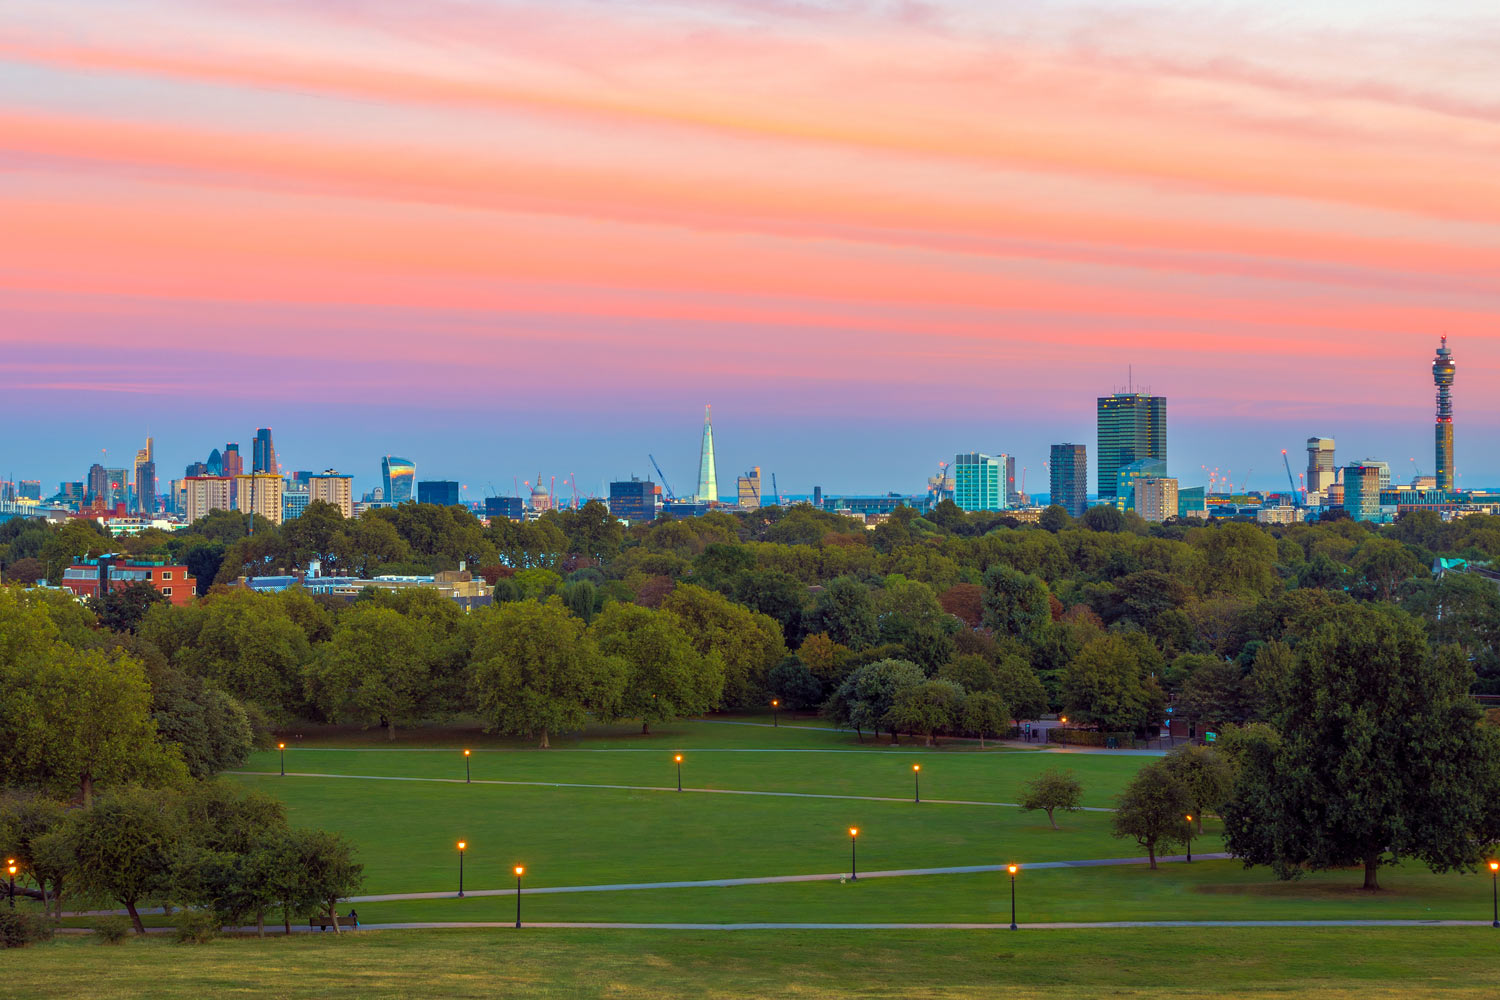 London cityscape seen from Primrose Hill at sunset